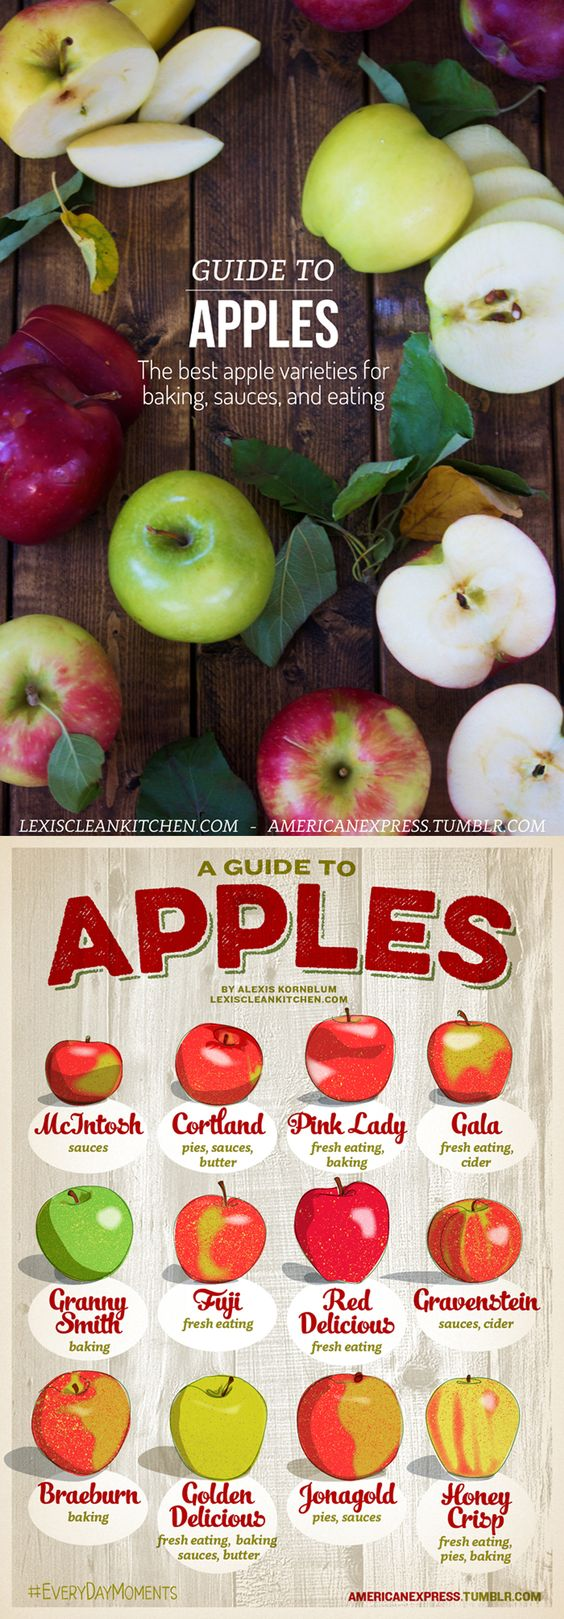 Guide to #APPLES! The best apples for baking, eating, sauces, and apple butter!: